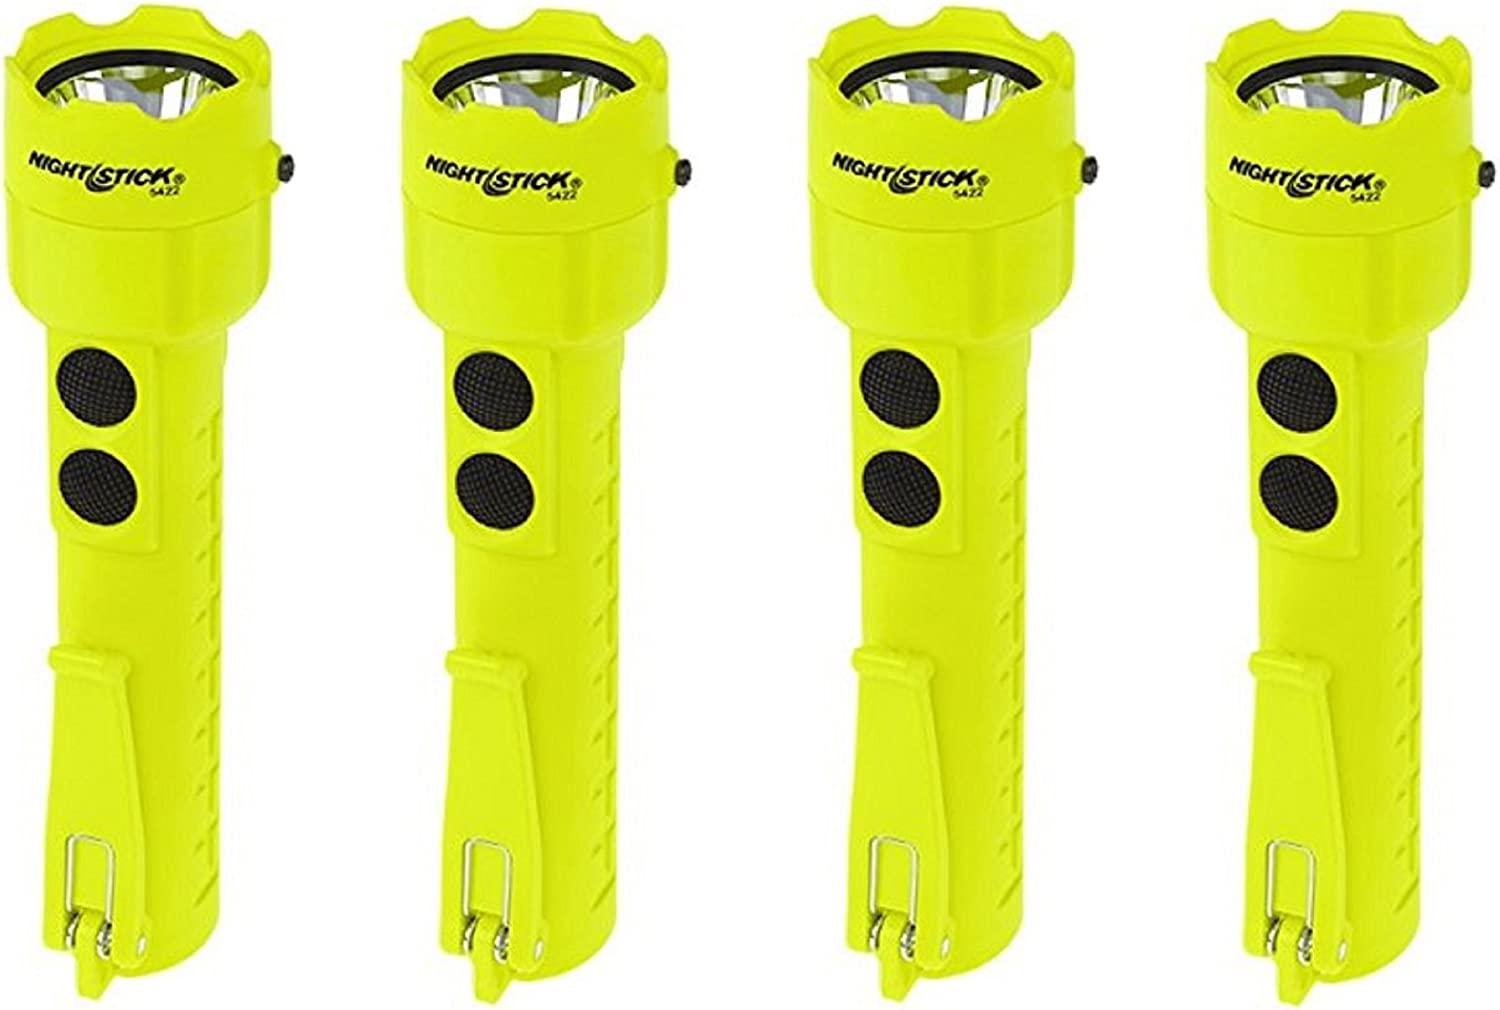 (4 Pack) Nightstick XPP-5422G 3 AA Intrinsically Safe Permissible Dual-Light Flashlight, Green 71s1lZ4d5ELSL1500_